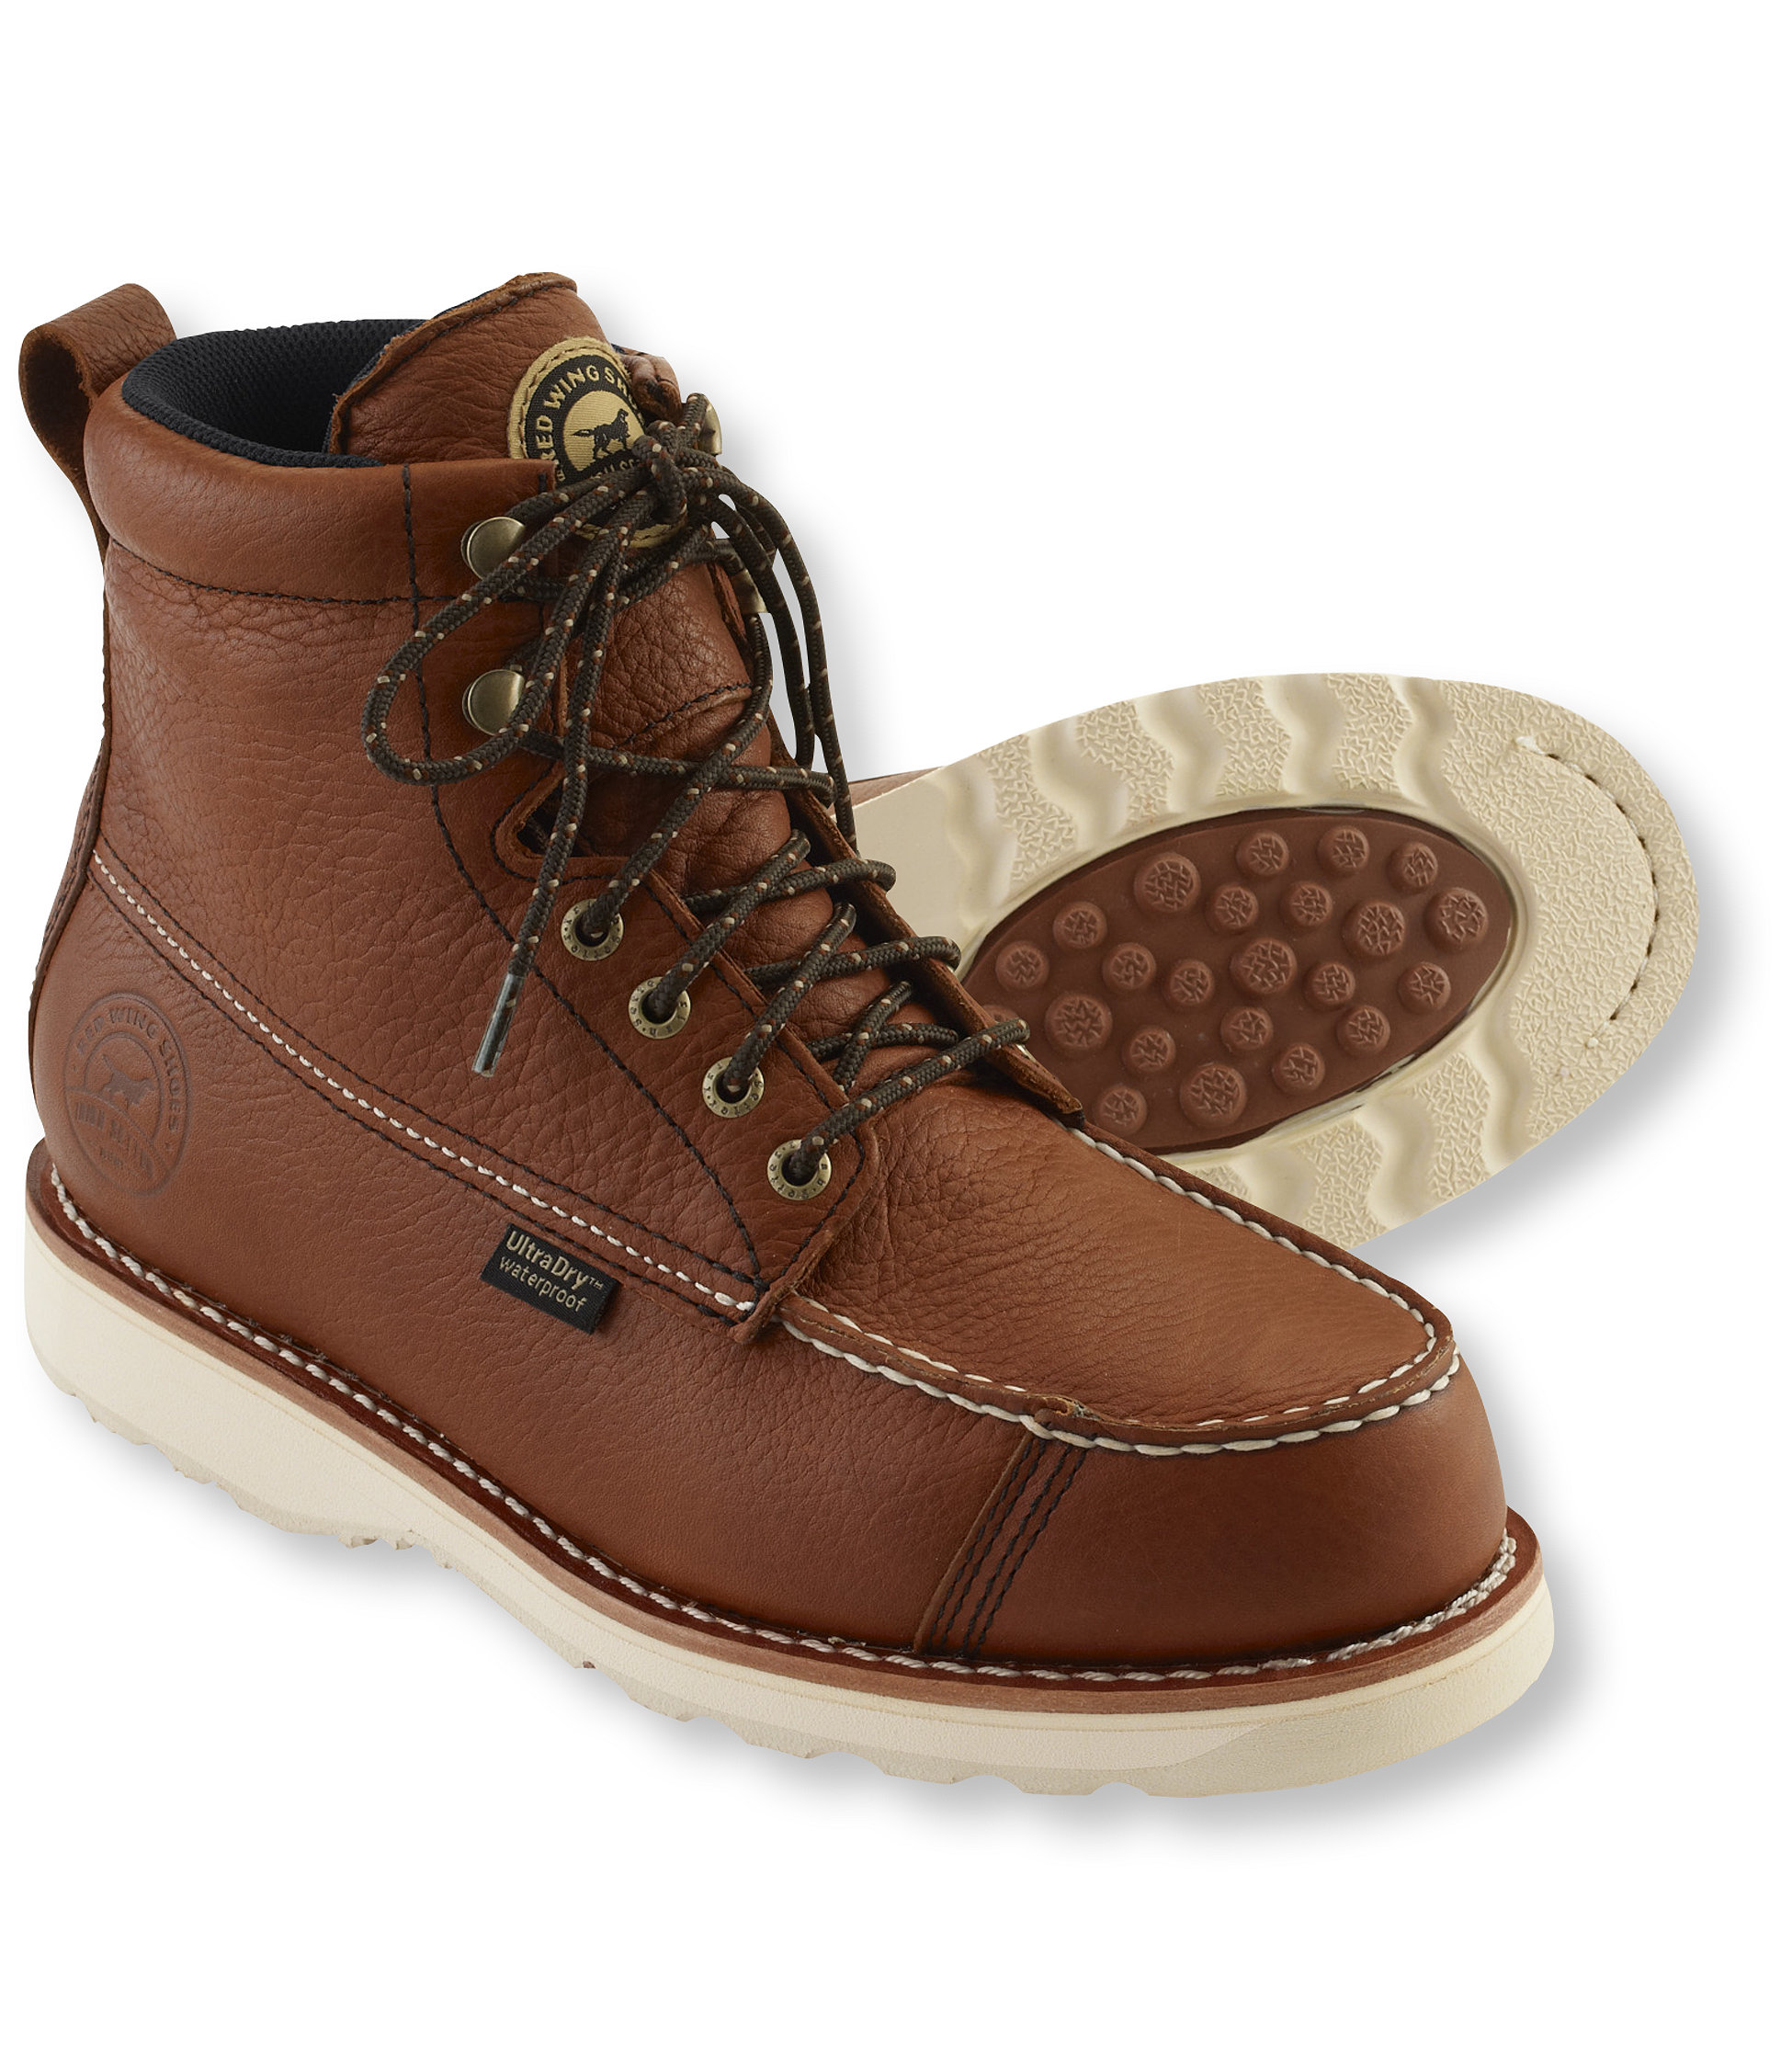 Red Wing Hiking Boots 7vhmPRlu